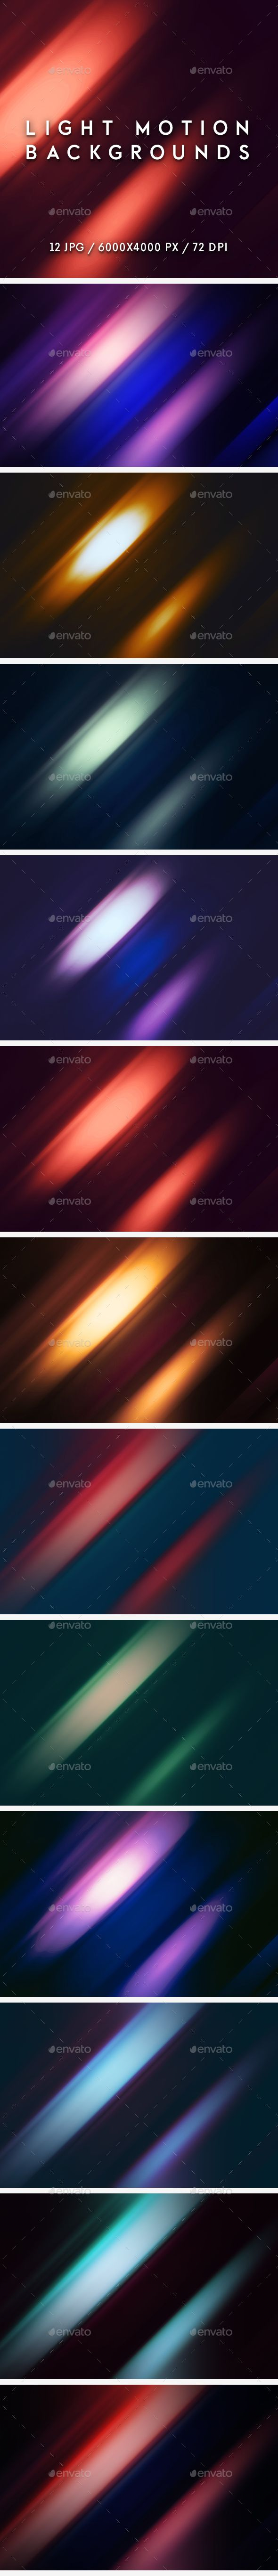 Light Motion Backgrounds - #Abstract #Backgrounds Download here: https://graphicriver.net/item/light-motion-backgrounds/19746982?ref=alena994